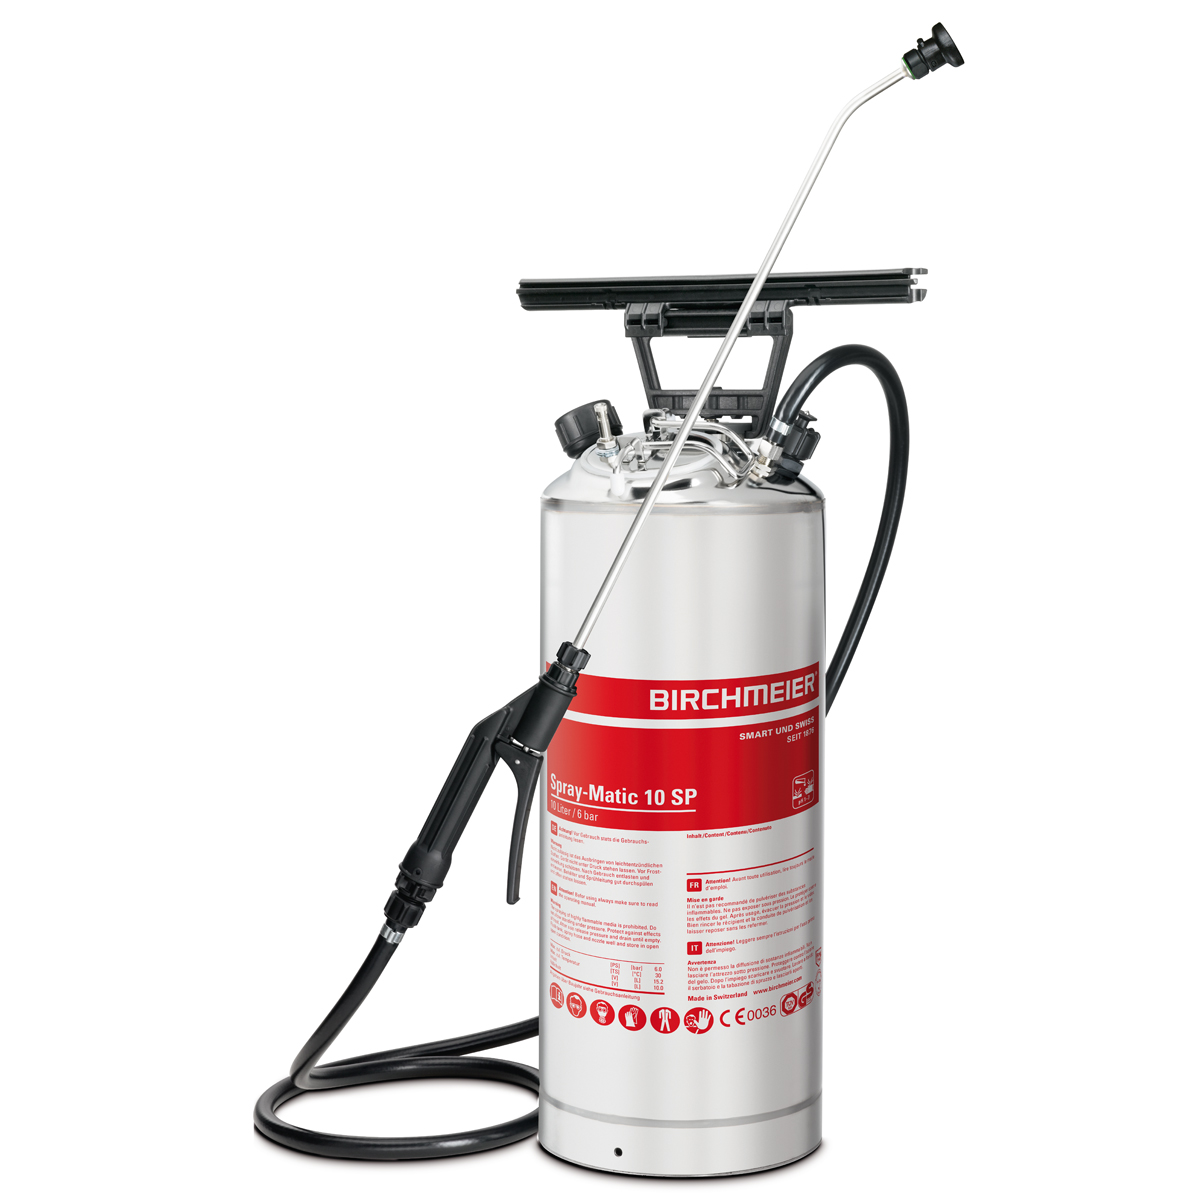 Spray-Matic 10 SP with stainless steel hand pump and compressed-air union